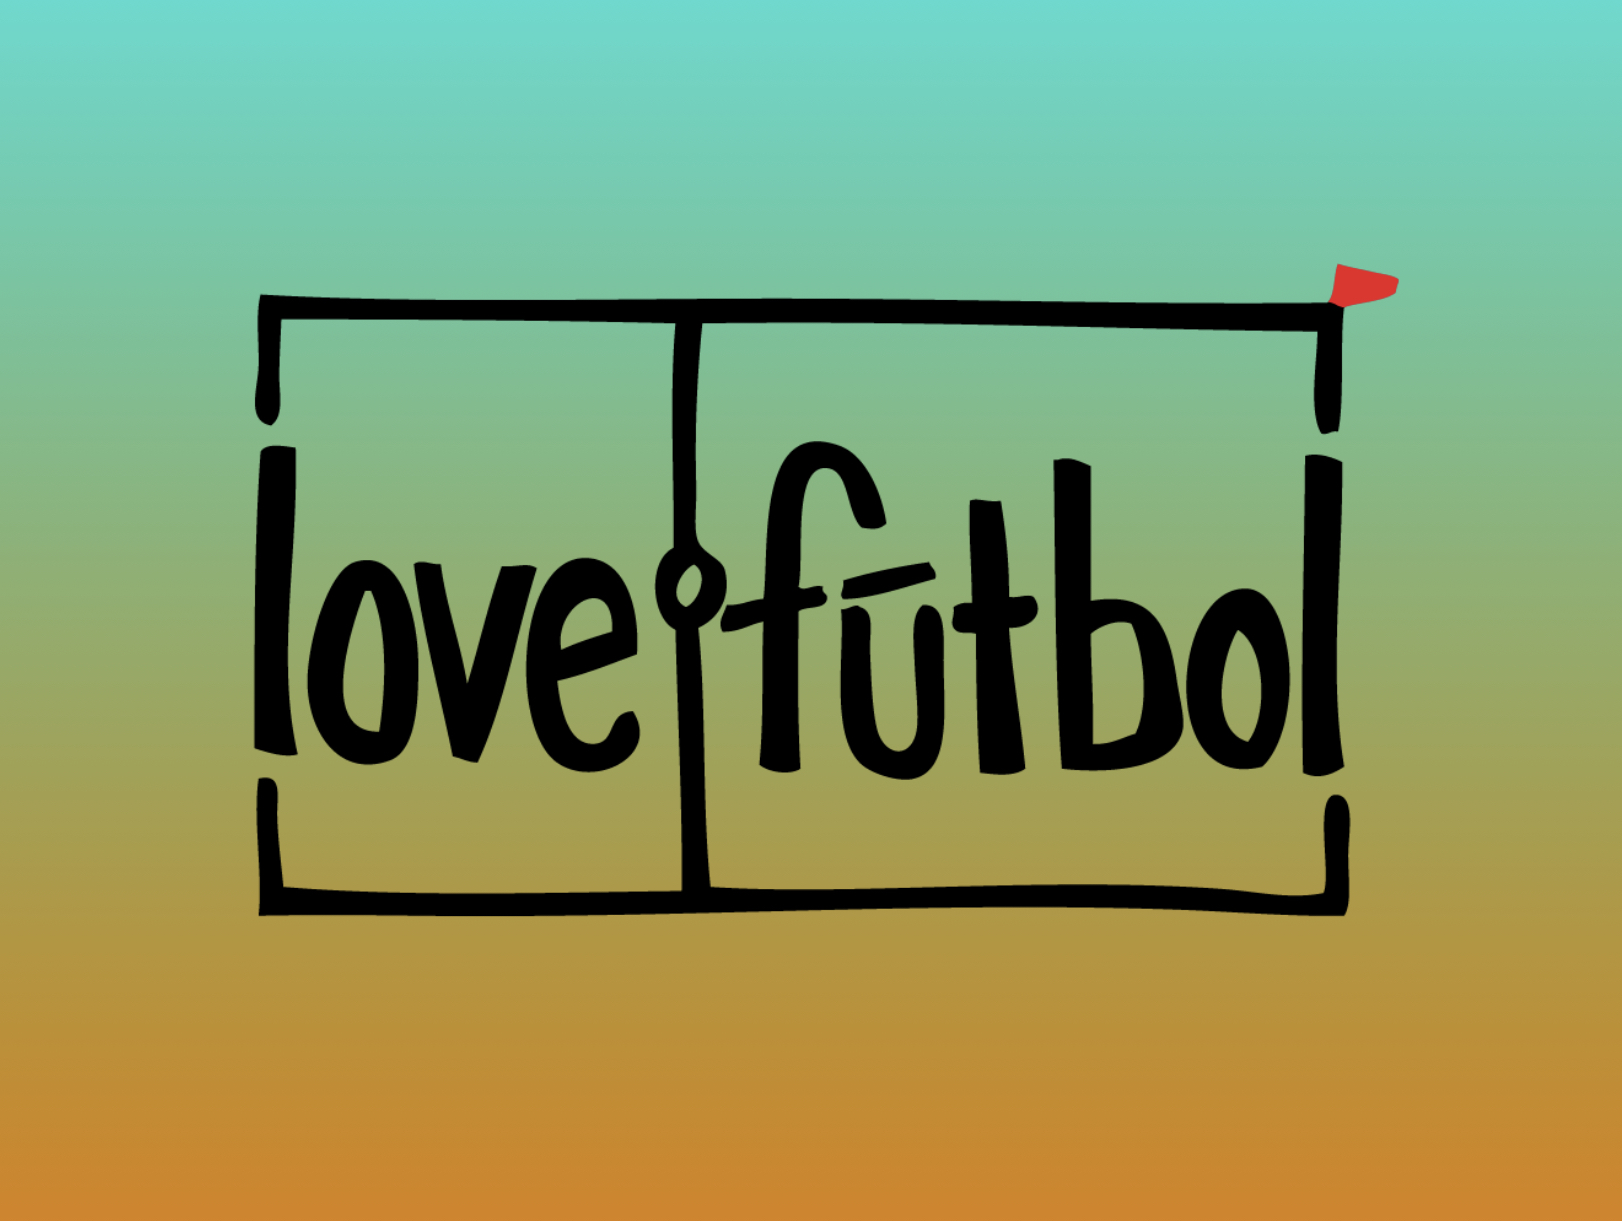 love.fútbol's Mission - love.fútbol believes that every child has the right to a safe place to play soccer. We partner with communities worldwide to create, reclaim and redefine soccer fields as platforms for long-term social change. Since 2006, local community members have dedicated over 70,000 volunteer hours to lead the creation of these spaces where over 40,000 children and youth play soccer everyday.The places we play are theaters of self-expression; where we connect with ourselves, each other, and the world. Where we receive endless, simple gifts -- of friendship, health, and life lessons; a reminder that it's good to be human; and a place to escape in times when it's not. We believe that access to passion and an active lifestyle are the foundation for a positive and productive life.love.fútbol exists as an effort to ensure every kid has a place to go for this feeling. To be lost in passion. To be grateful to this beautiful game.